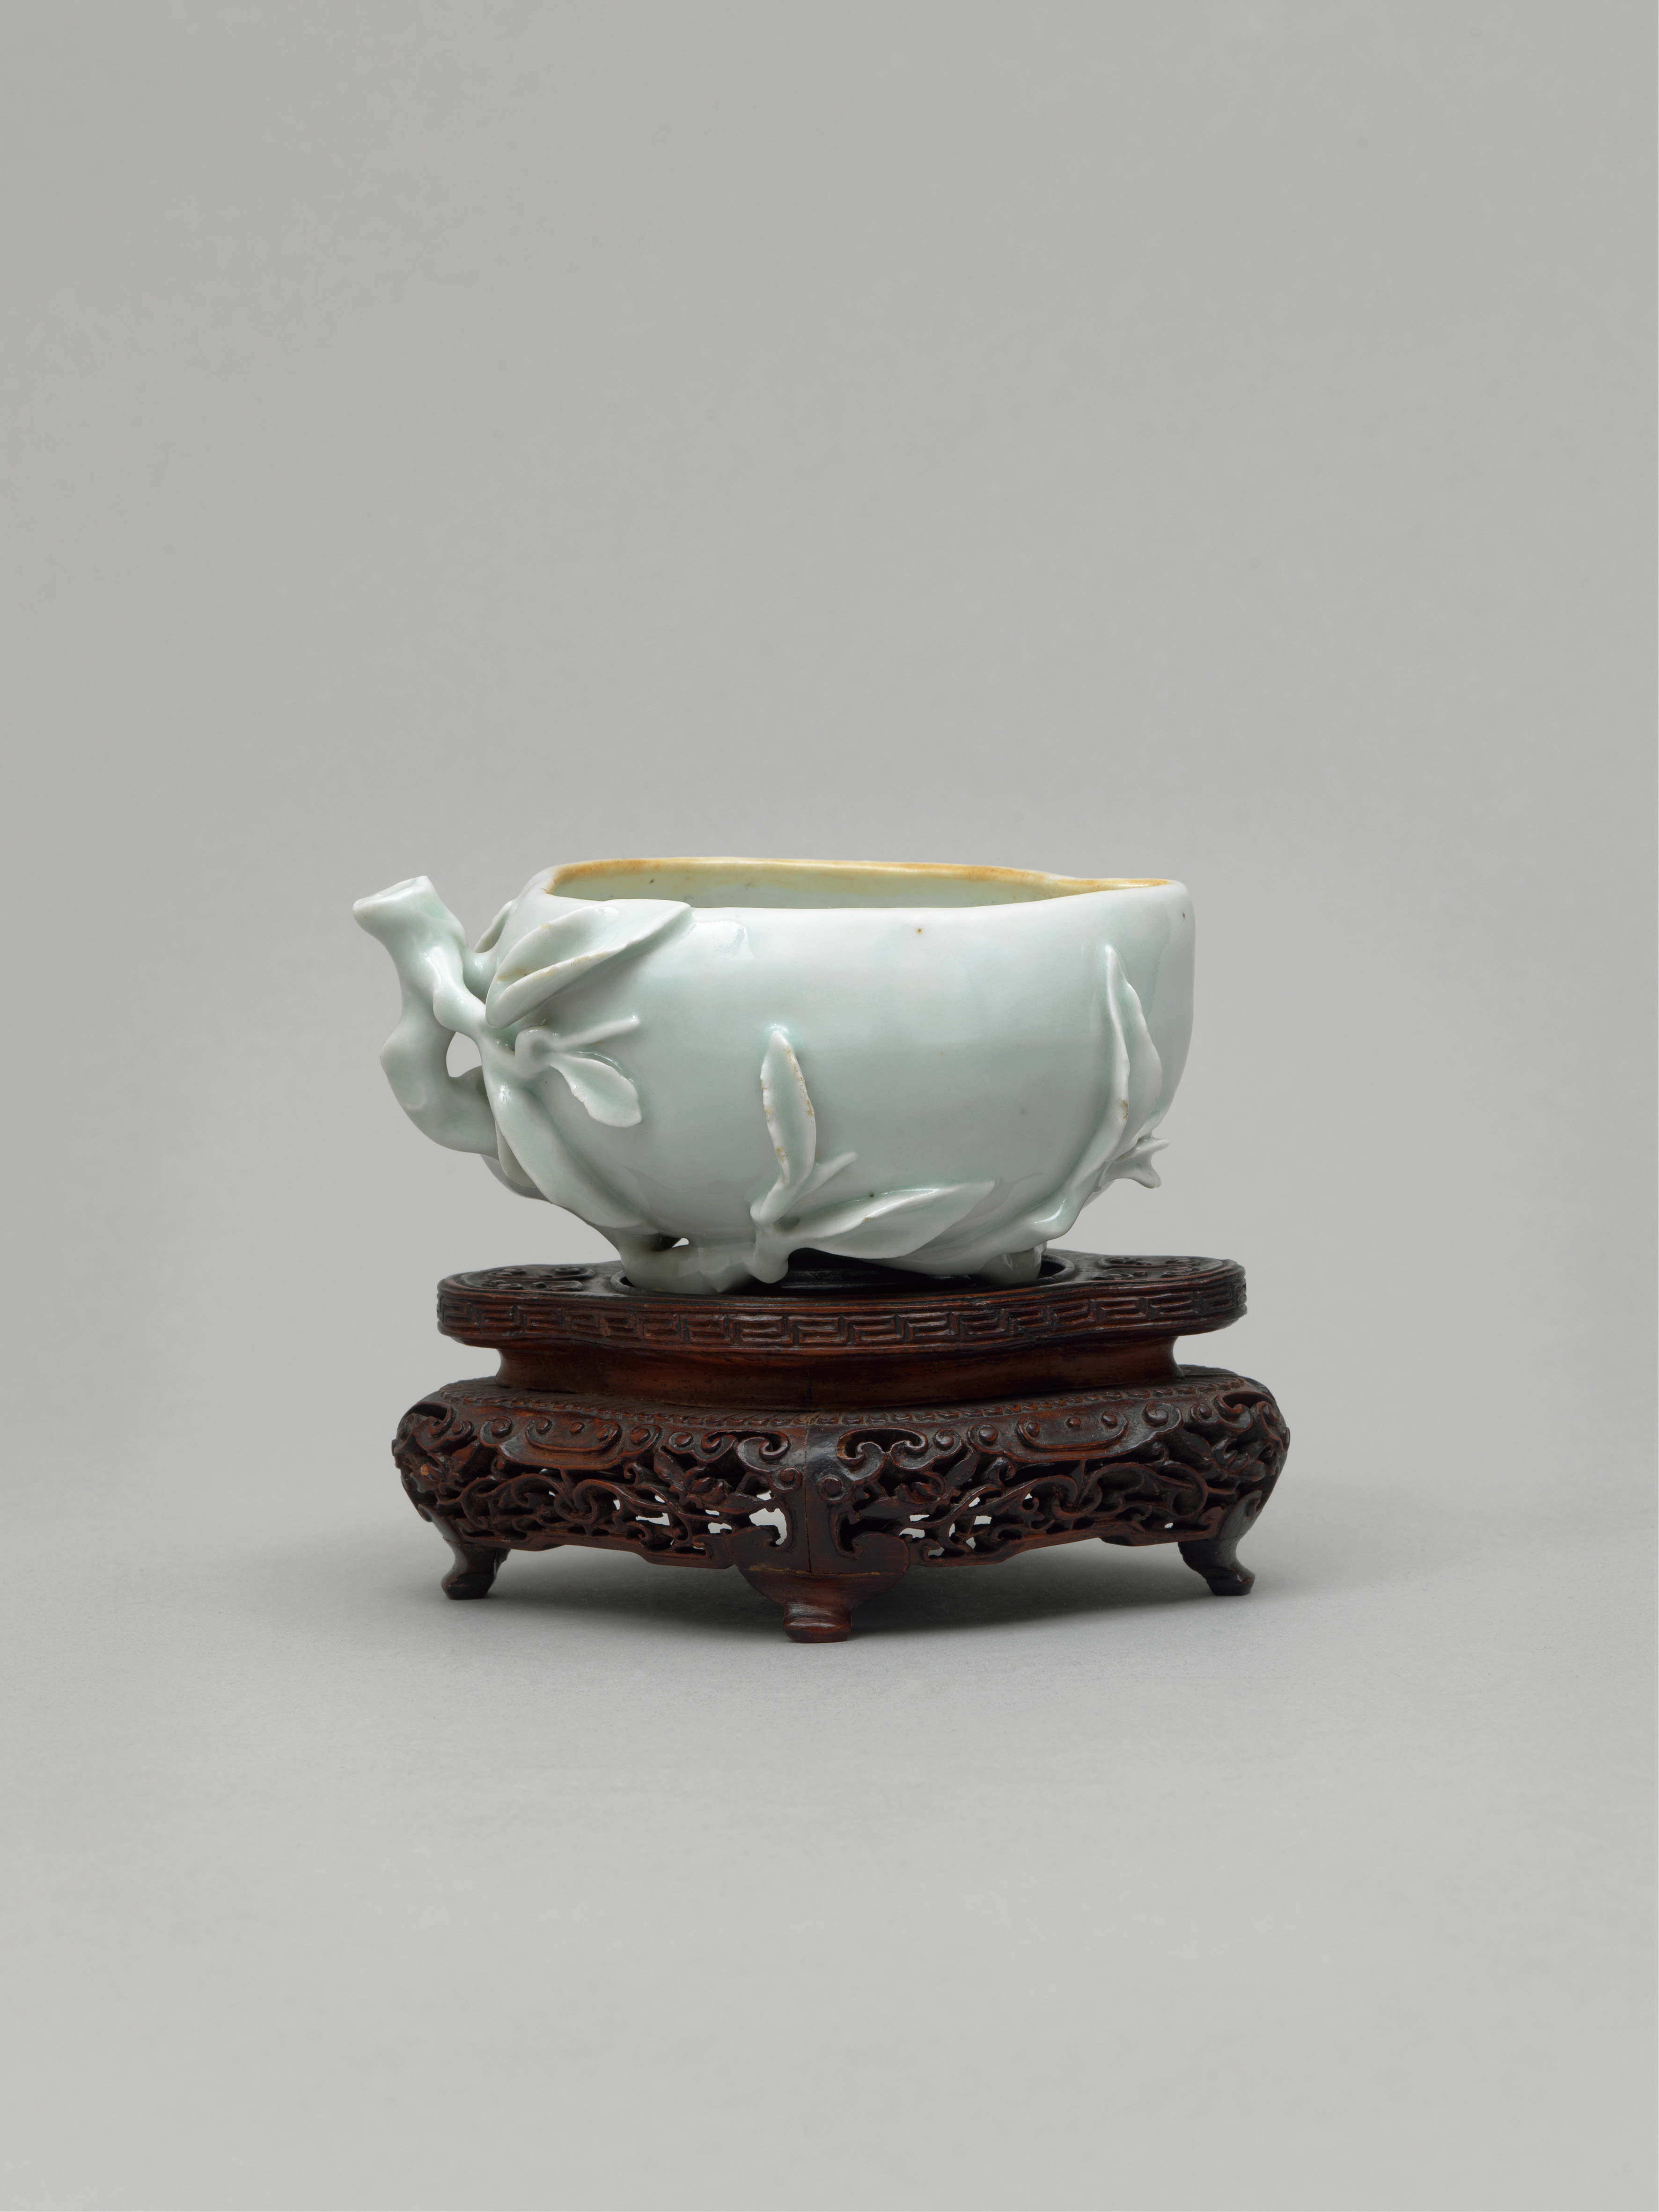 Lot 3 - A white glazed brush washier in the shape of a peach, Mid Qing, Late 17th-early 18th century